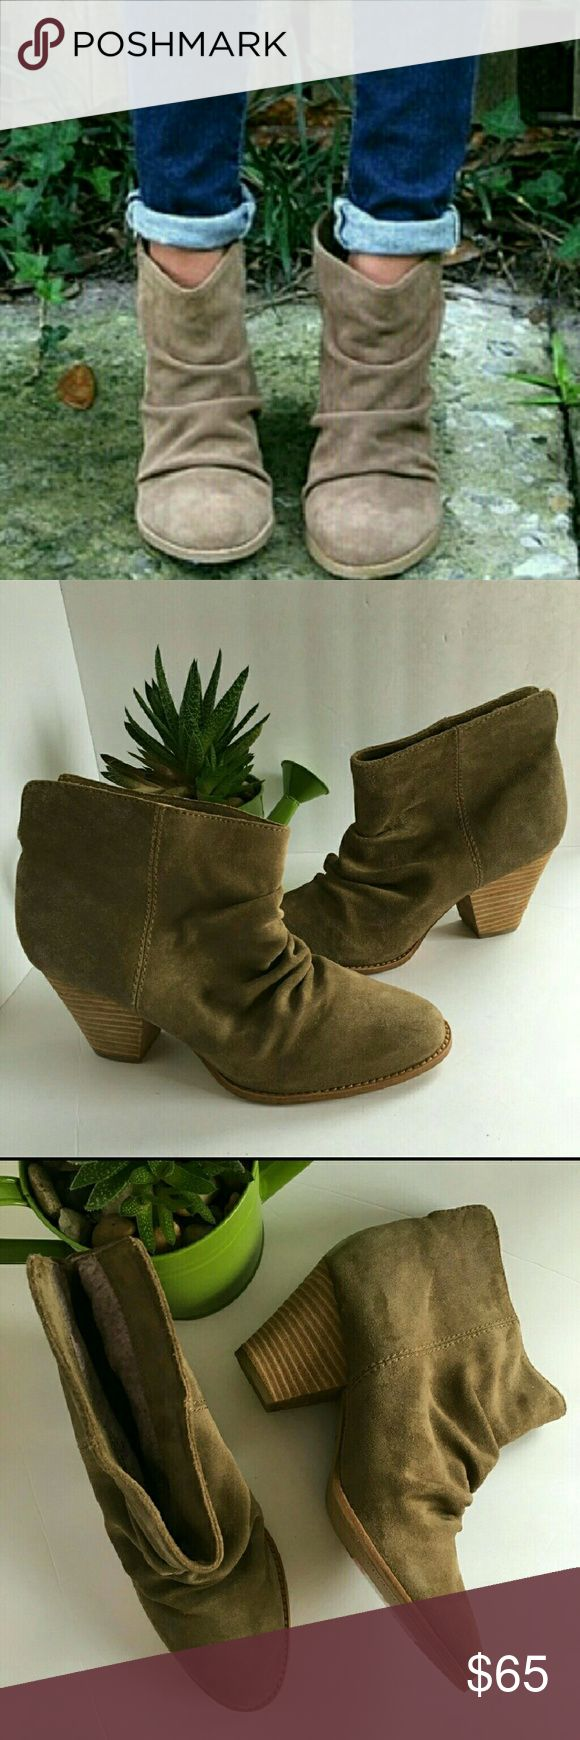 """Splendid fine leather rodeo ankle boots size 10 NWOB plendid fine leather ankle boots. Size 10. Heel is about 2.75""""tall. Sorry no box. Splendid Shoes Ankle Boots & Booties"""